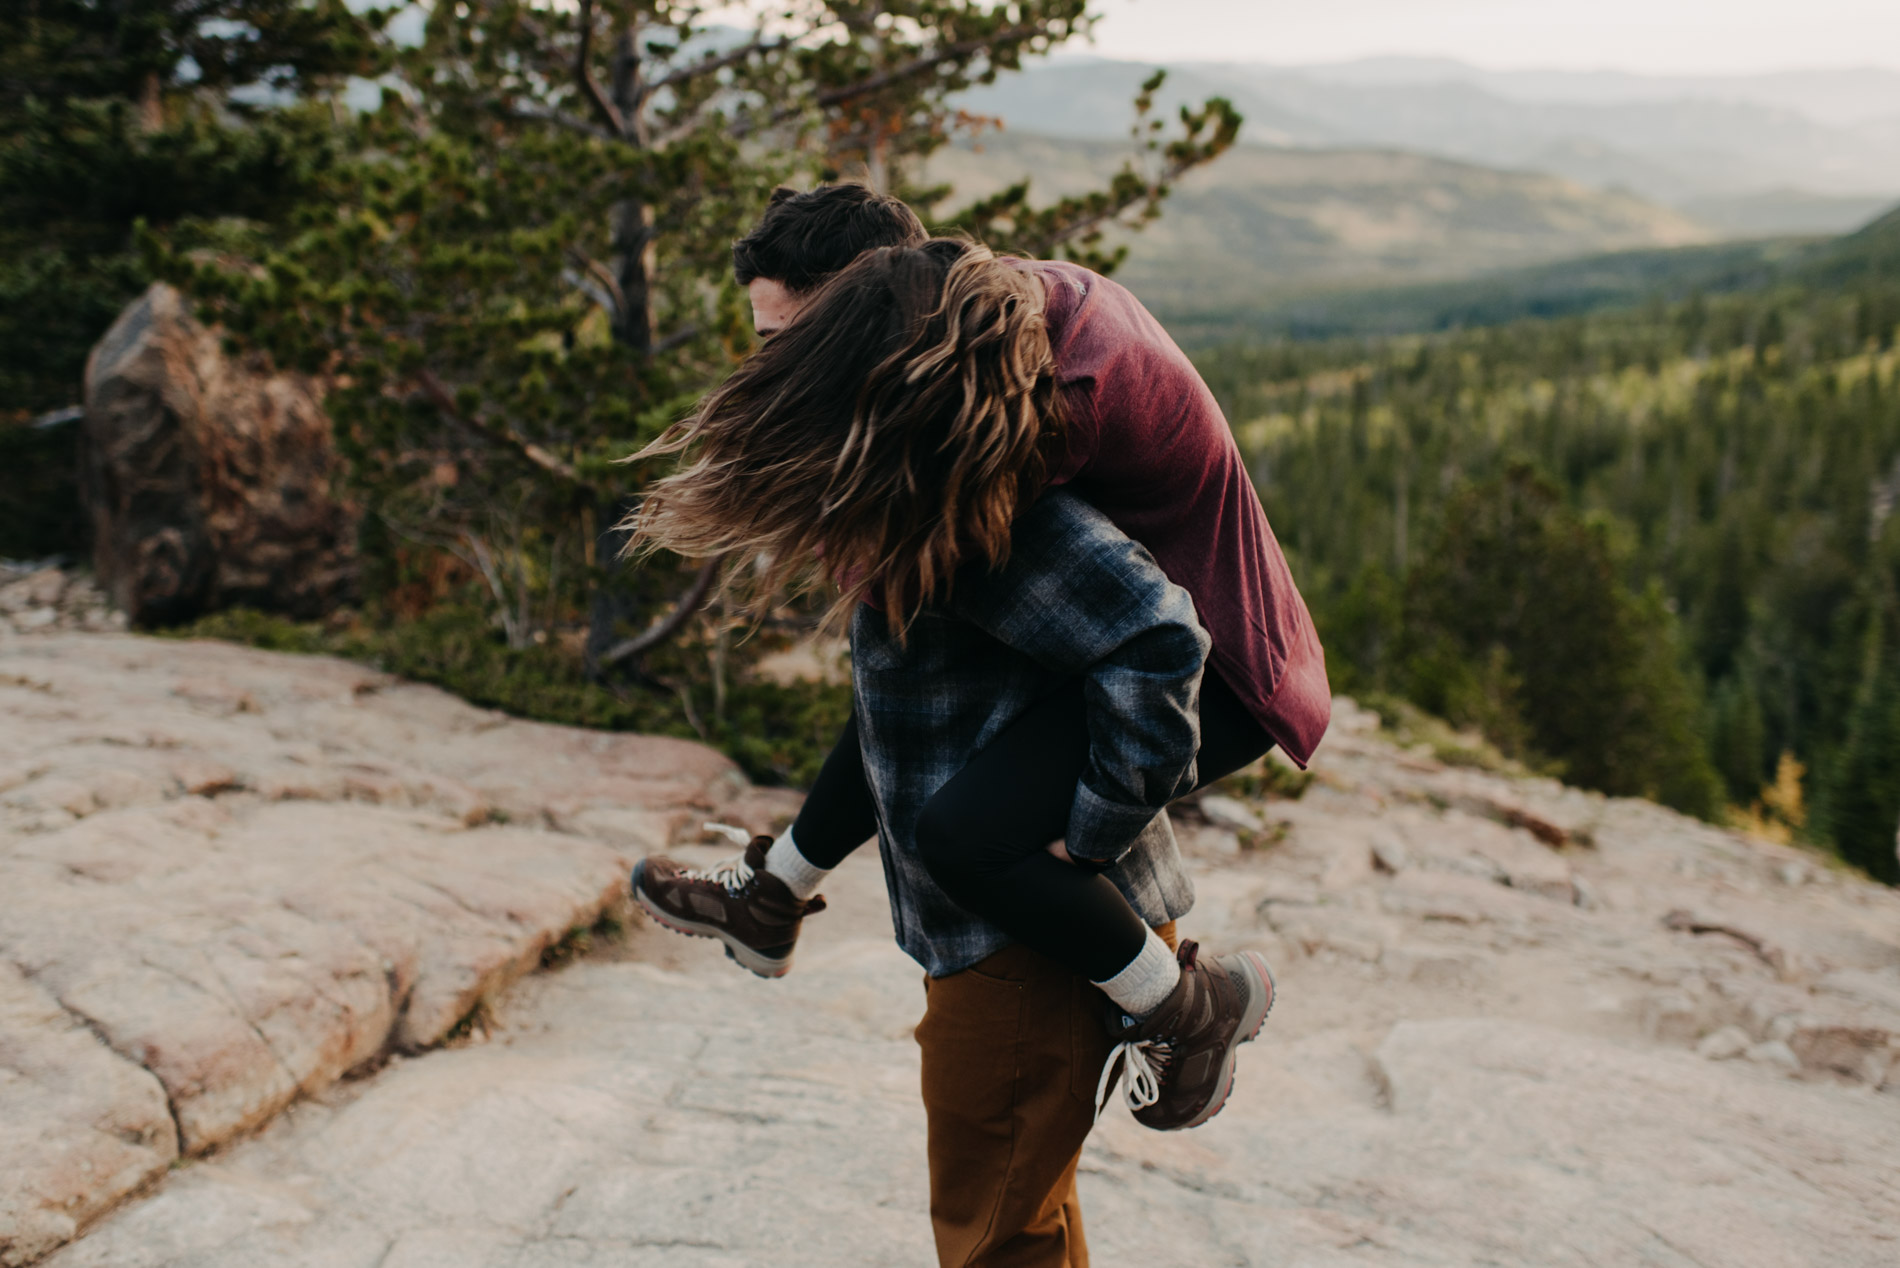 Engagement-session-colorado-engagement-session-Adventurous-Wedding-Photography-Adventurous-Wedding-Photograph-Adventure-Elopement-Photographer-Adventurous-Elopement-Photograph-Adventurous-Elopement-Photographer-Adventurous-Destination-Elopement-Photographer-Destination-Elopement-Photography-Destination-Elopement-Packages-Rocky-Mountain-Elopement-Rocky-Mountain-National-Park-Photographer-Rocky-Mountain-National-Park-Photography-Rocky+Mountain+National+Park+Elopement+Rocky-Mountain-National-Park-Wedding-RMNP-Elopement-RMNP-Wedding-RMNP-Photographer